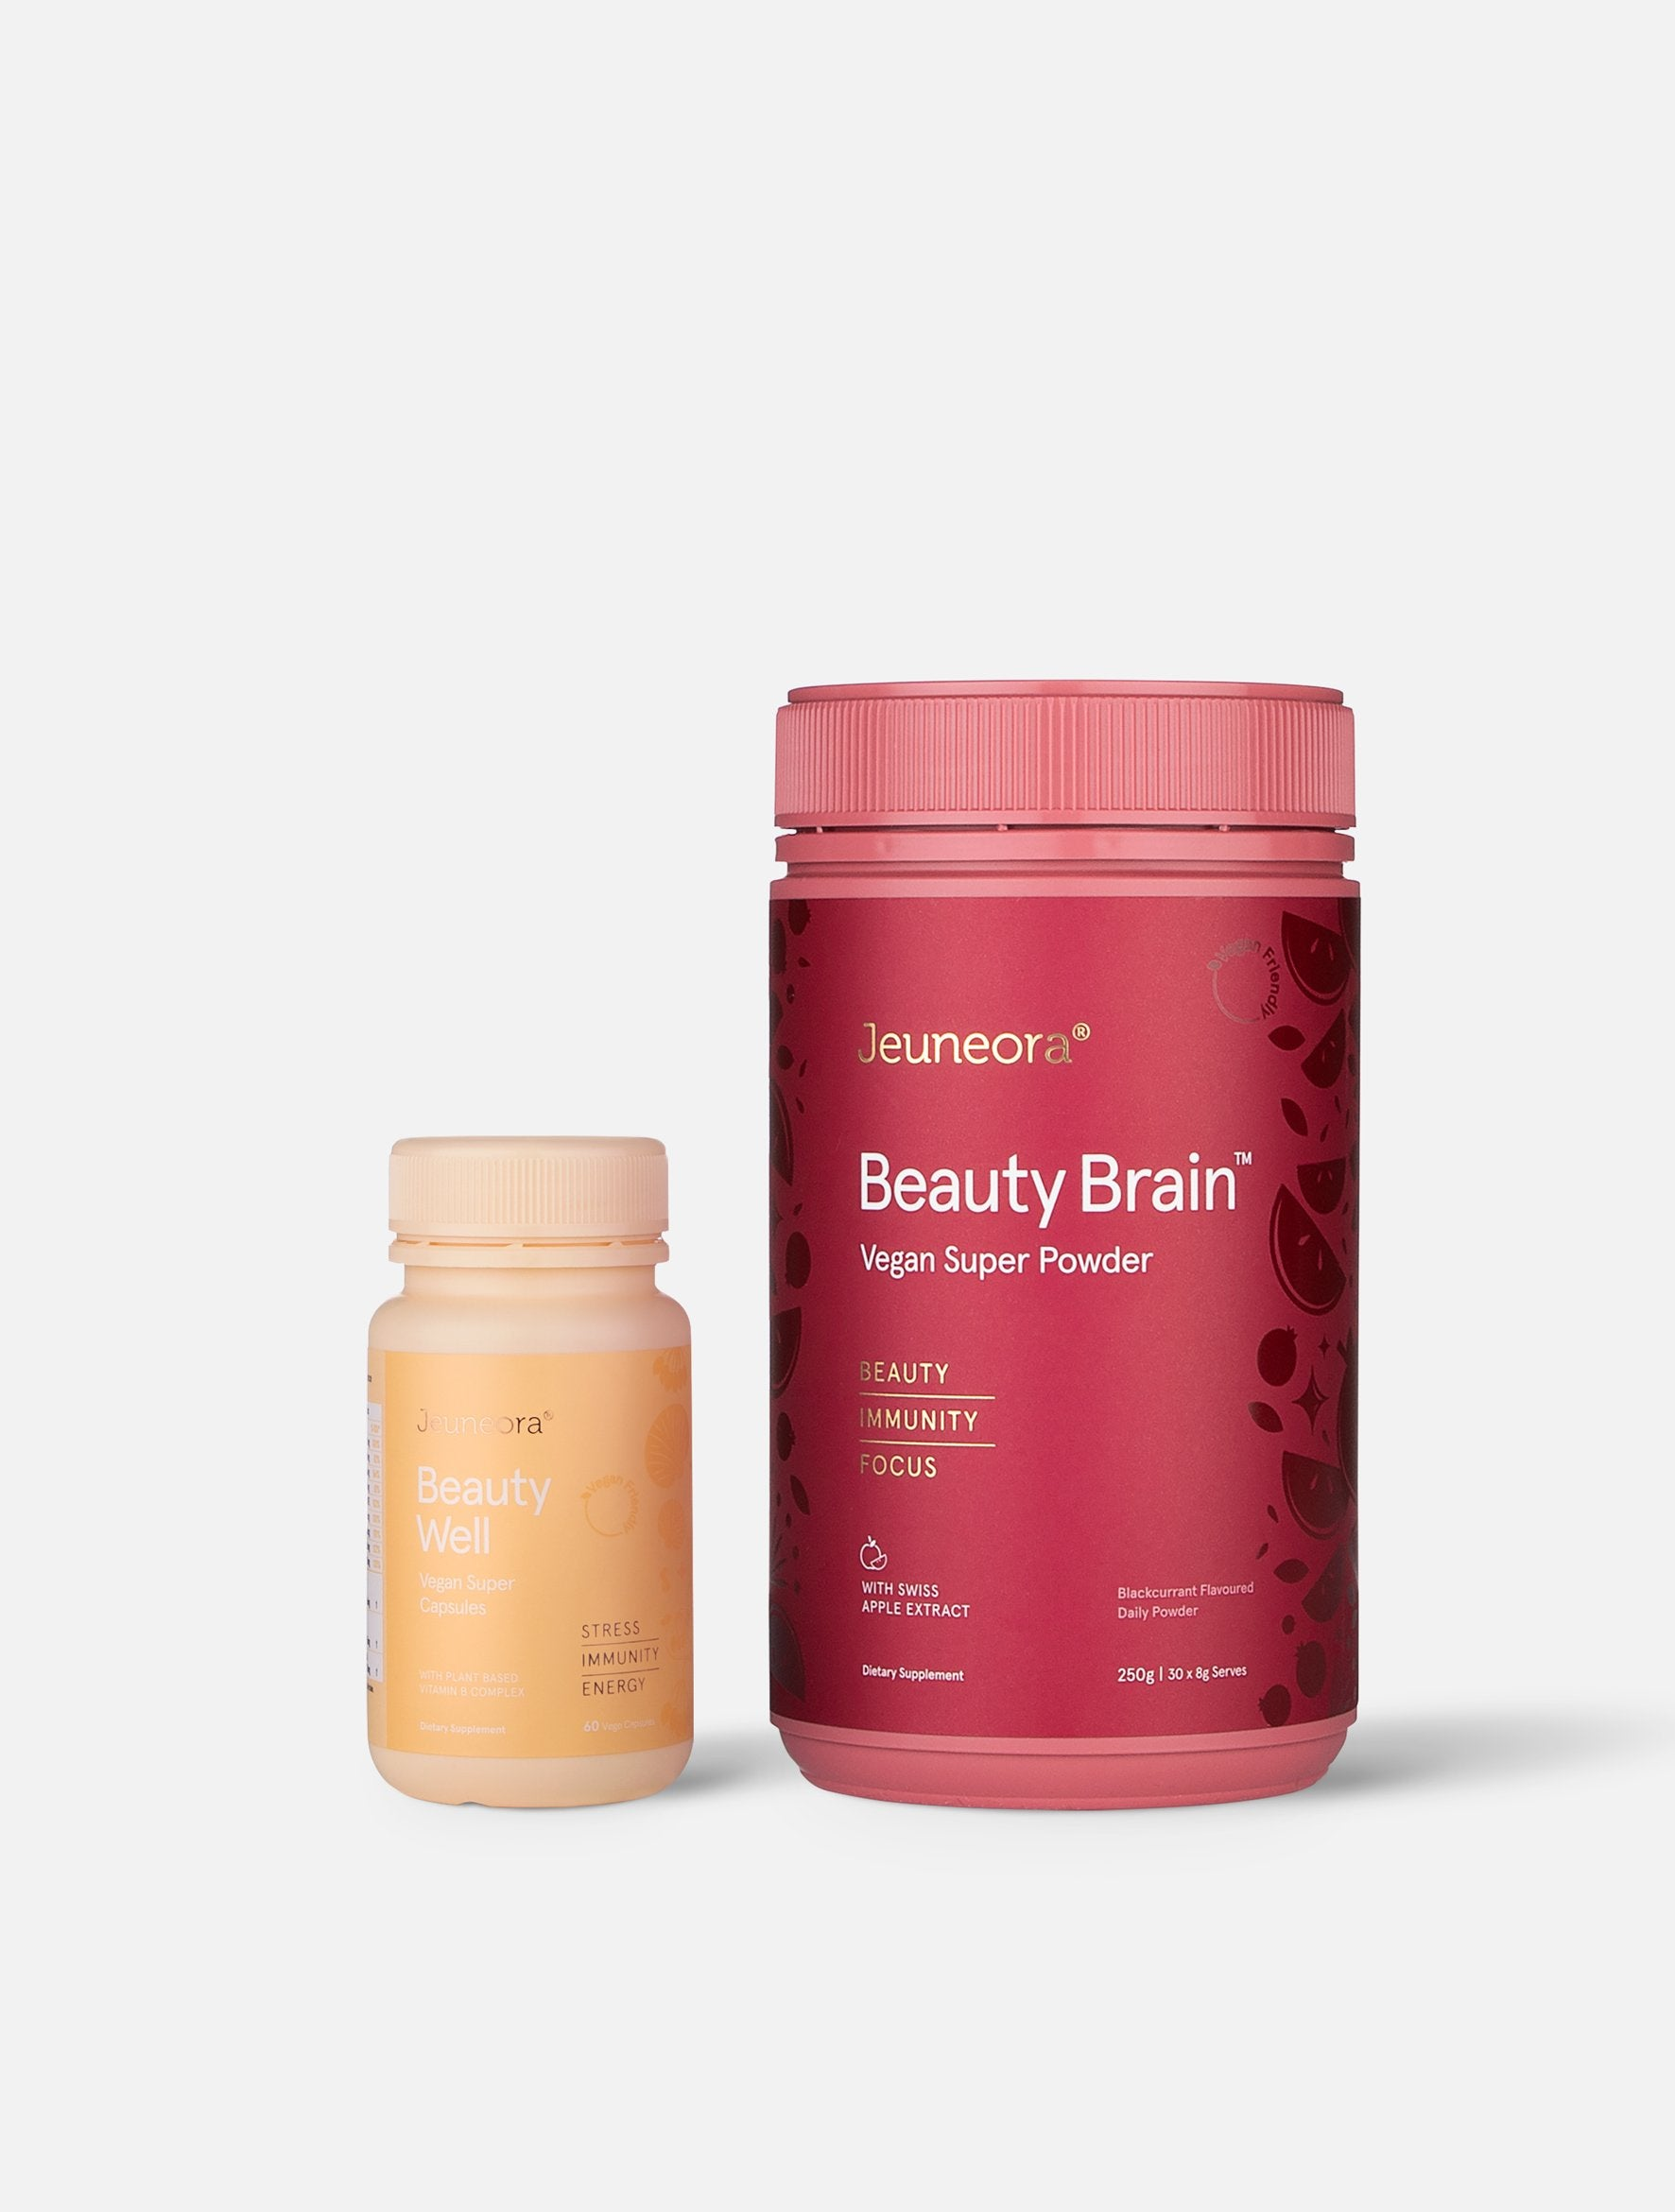 Jeuneora Beauty Brain™ and Beauty Well Capsules